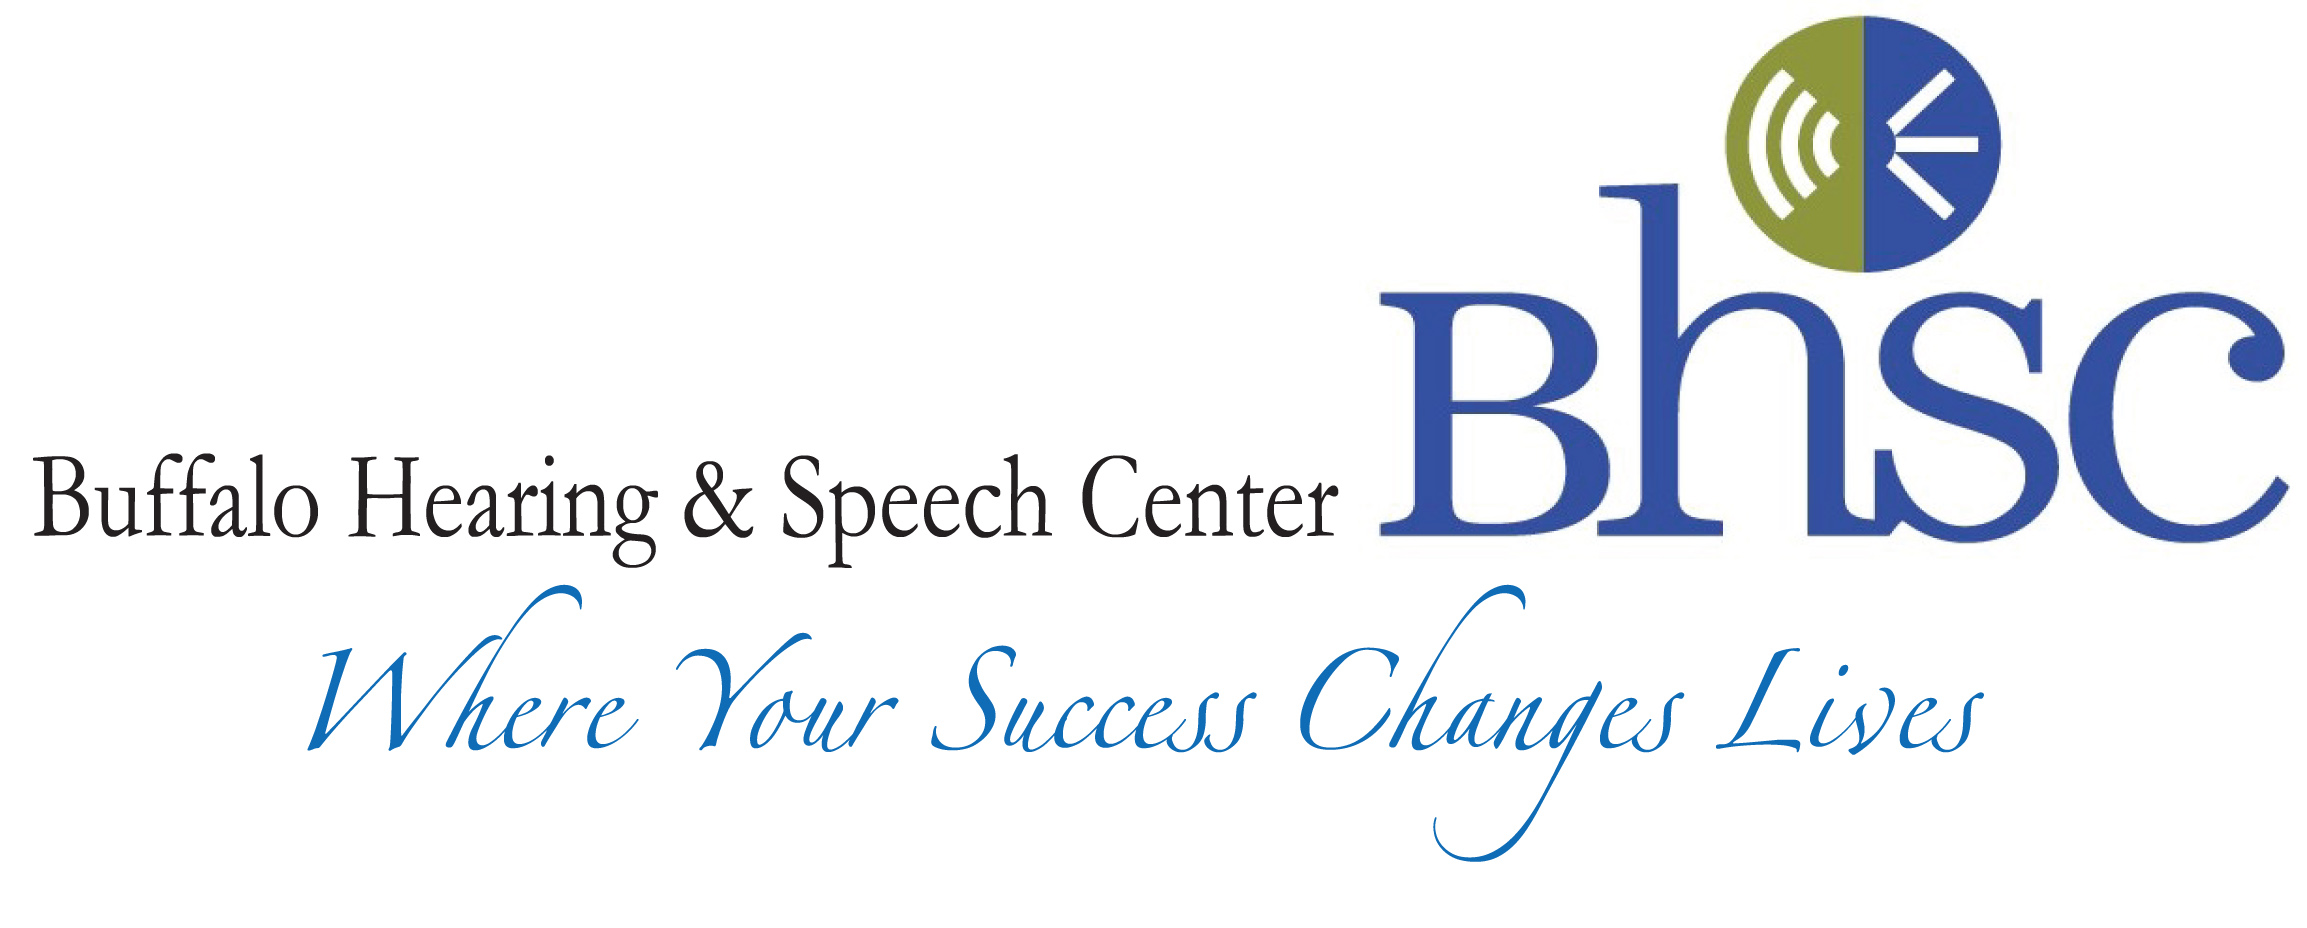 Buffalo Hearing and Speech Center